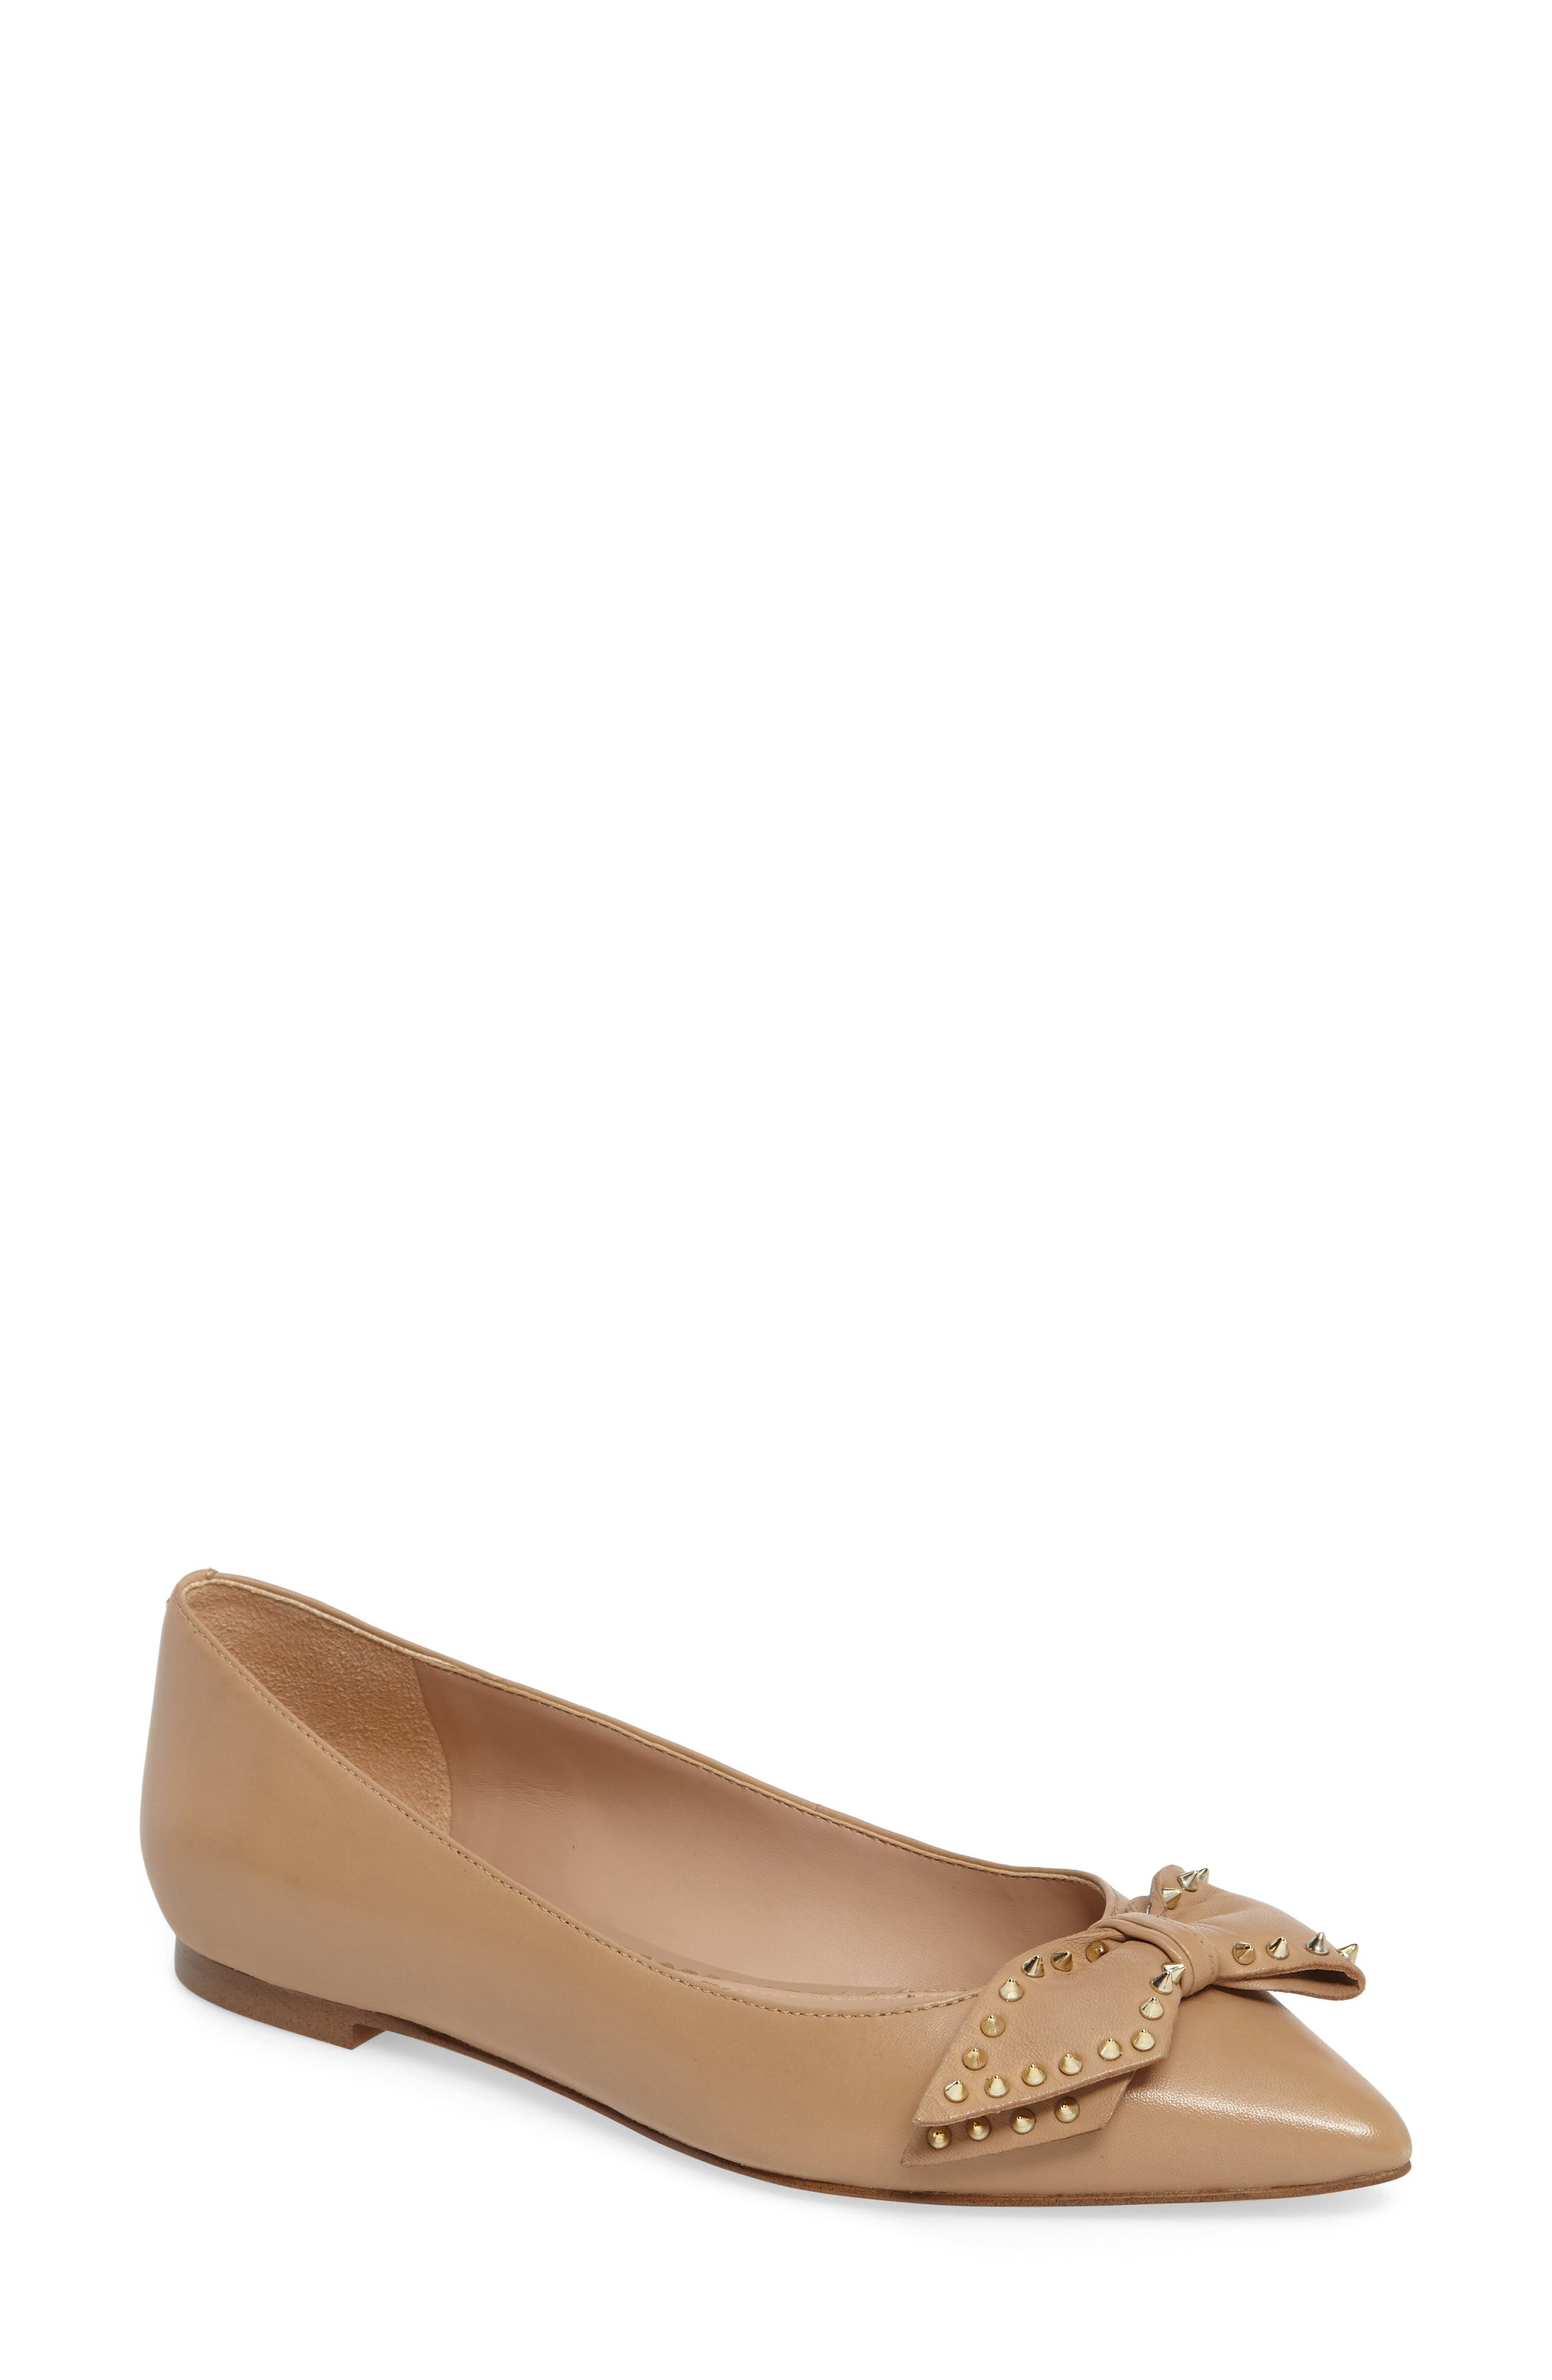 Alternate Image 1 Selected - Sam Edelman Raisa Bow Flat (Women)